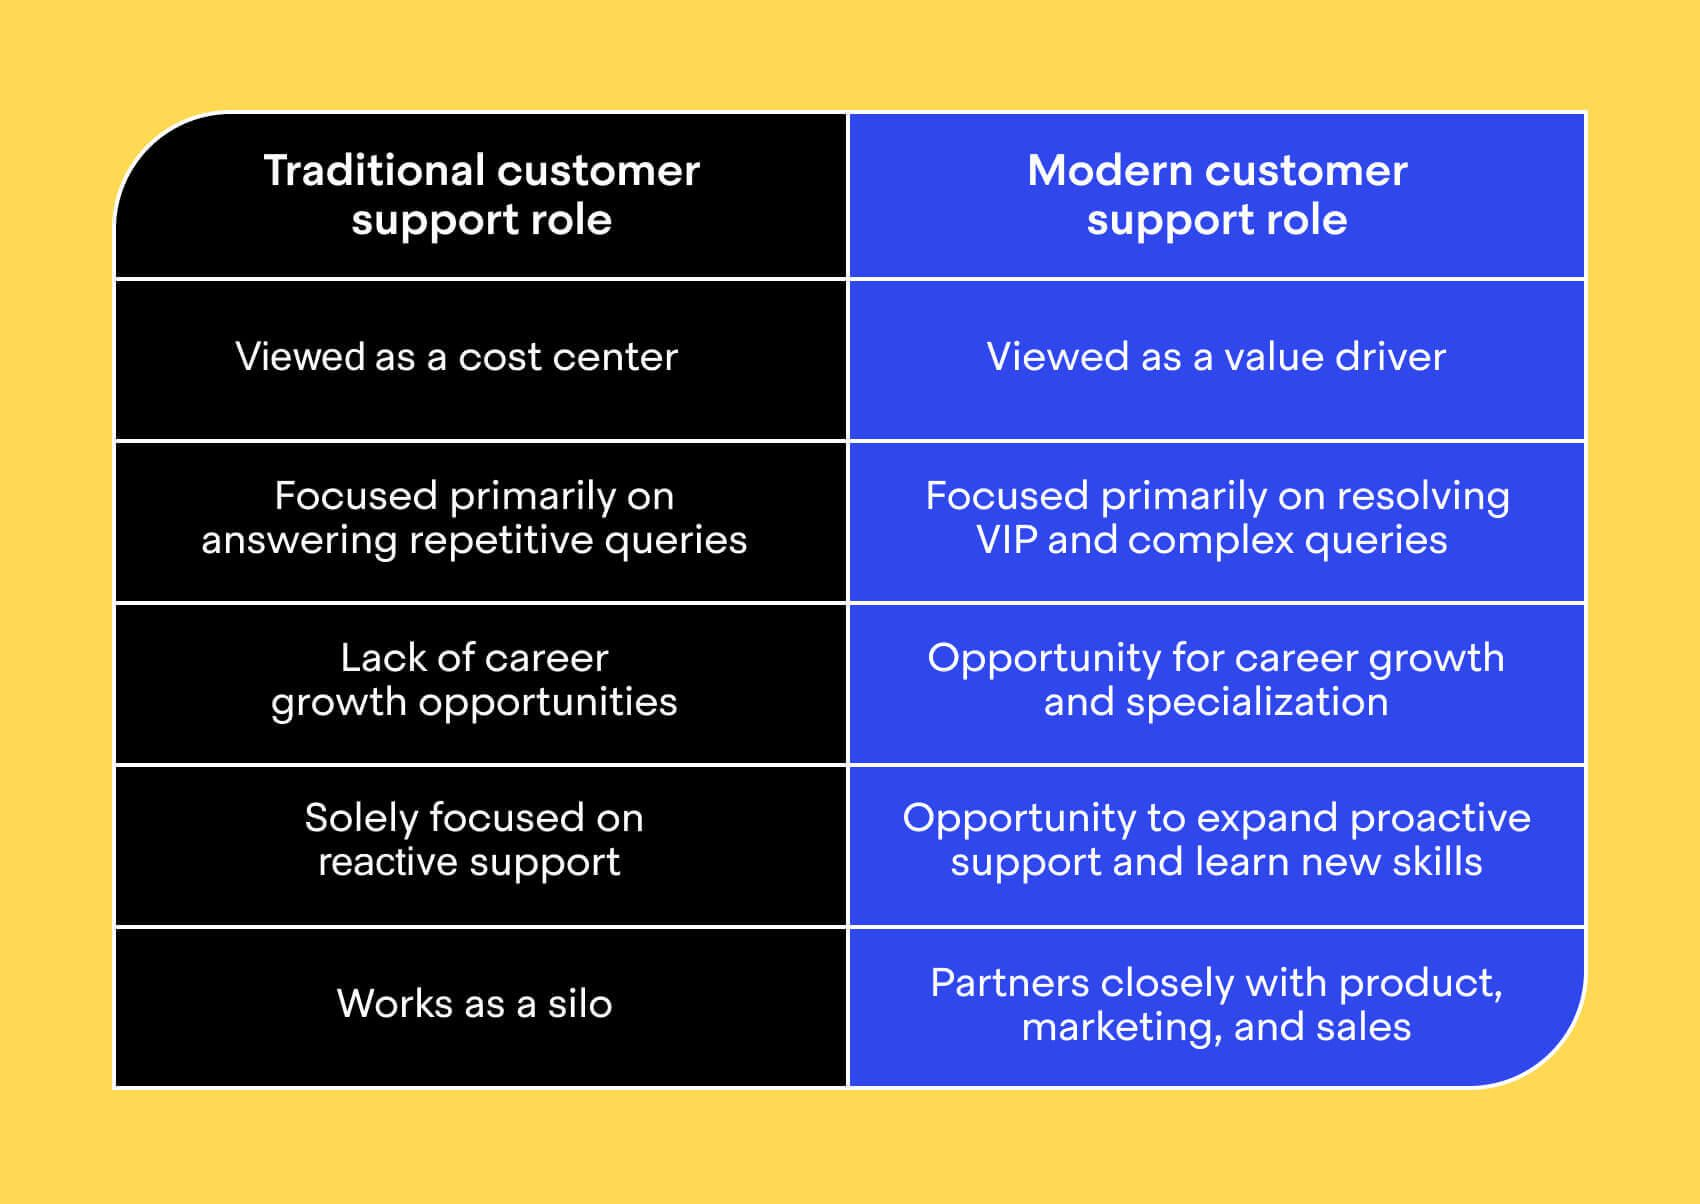 Traditional versus modern customer support roles